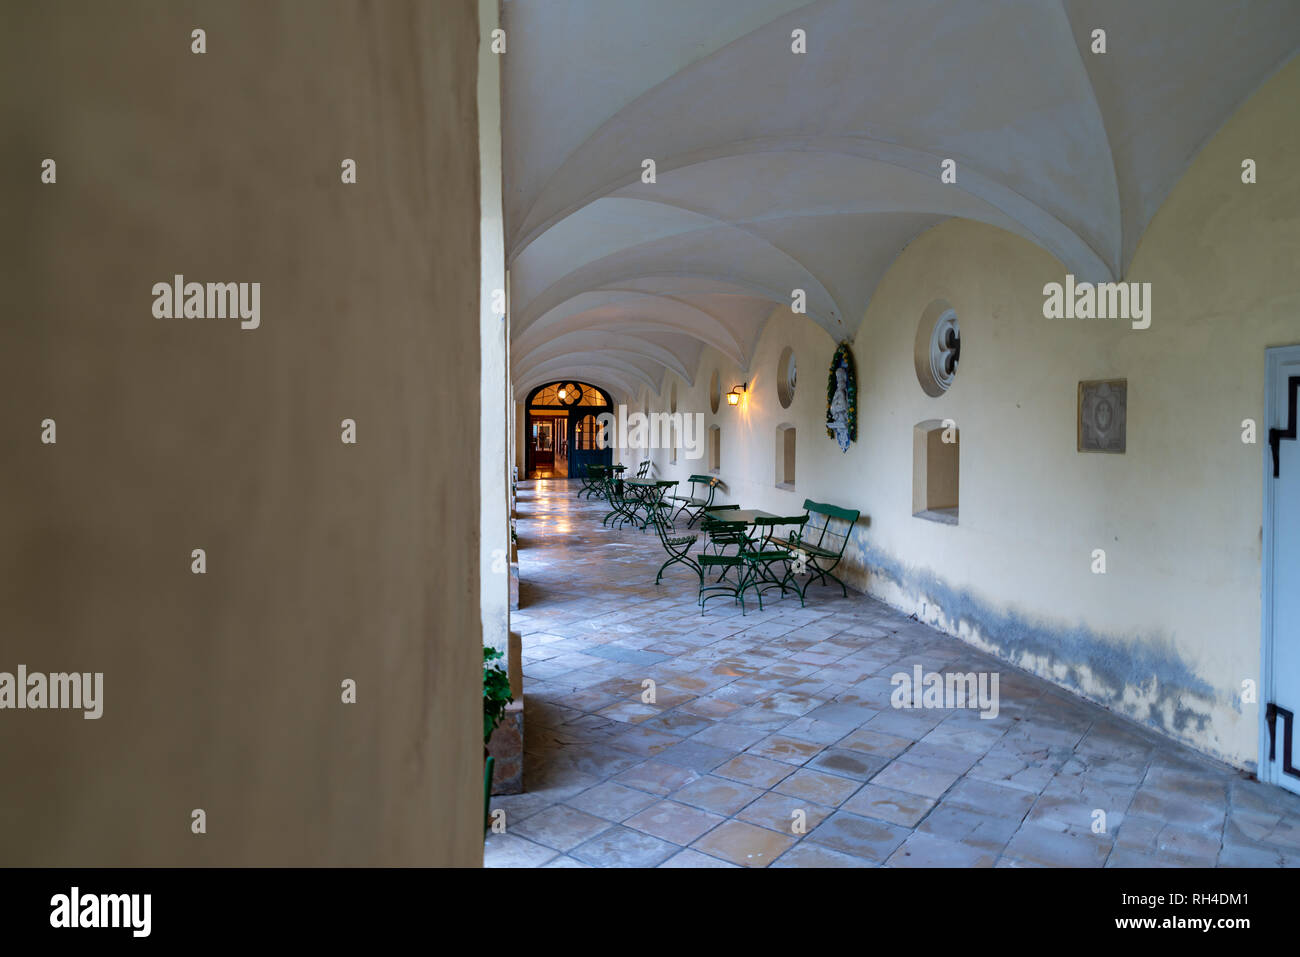 cloister of a convent in bavaria equipped with table and chairs gives a contemplative environment - Stock Image